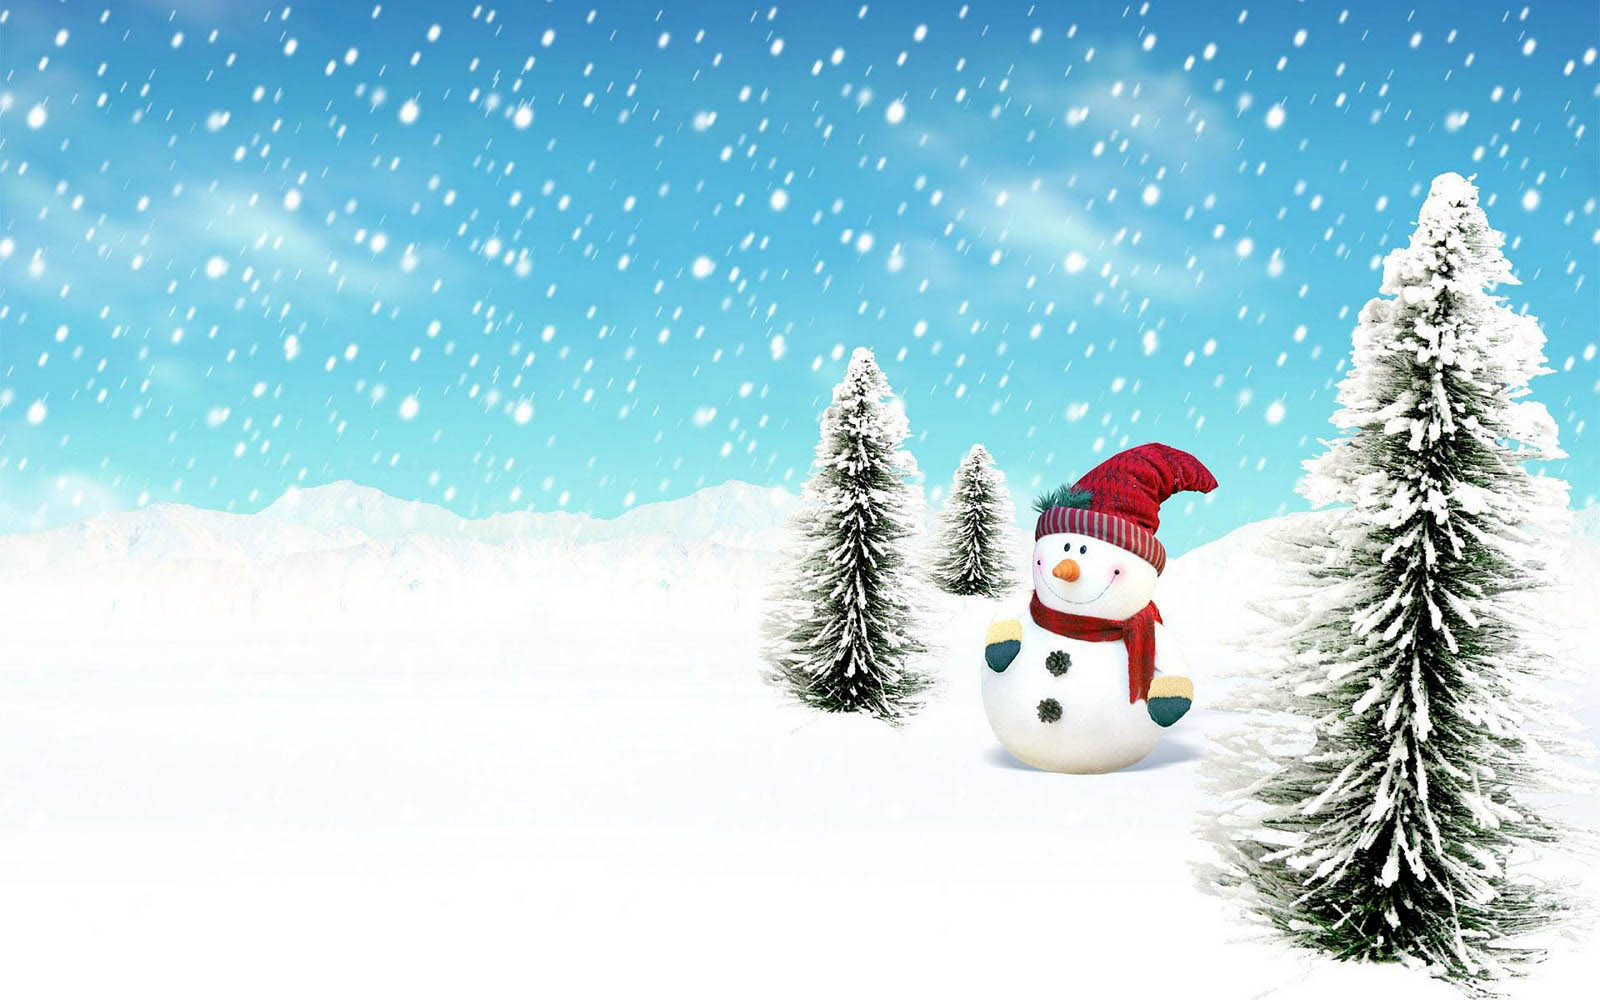 download Snowman Backgrounds Wallpaper [1600x1000] for your 1600x1000